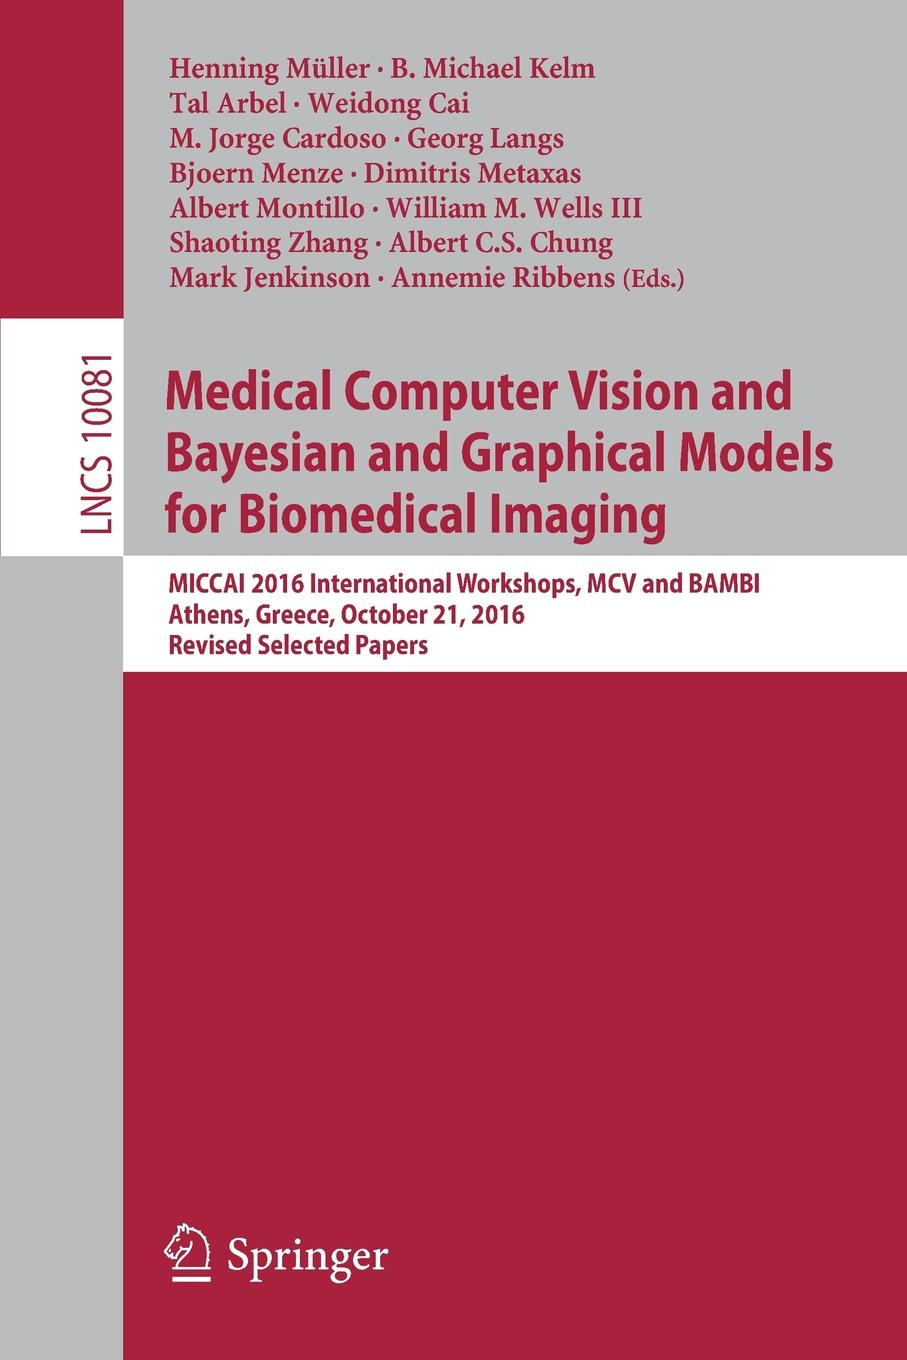 Medical Computer Vision and Bayesian and Graphical Models for Biomedical Imaging. MICCAI 2016 International Workshops, MCV and BAMBI, Athens, Greece, October 21, 2016, Revised Selected Papers mcv медицина